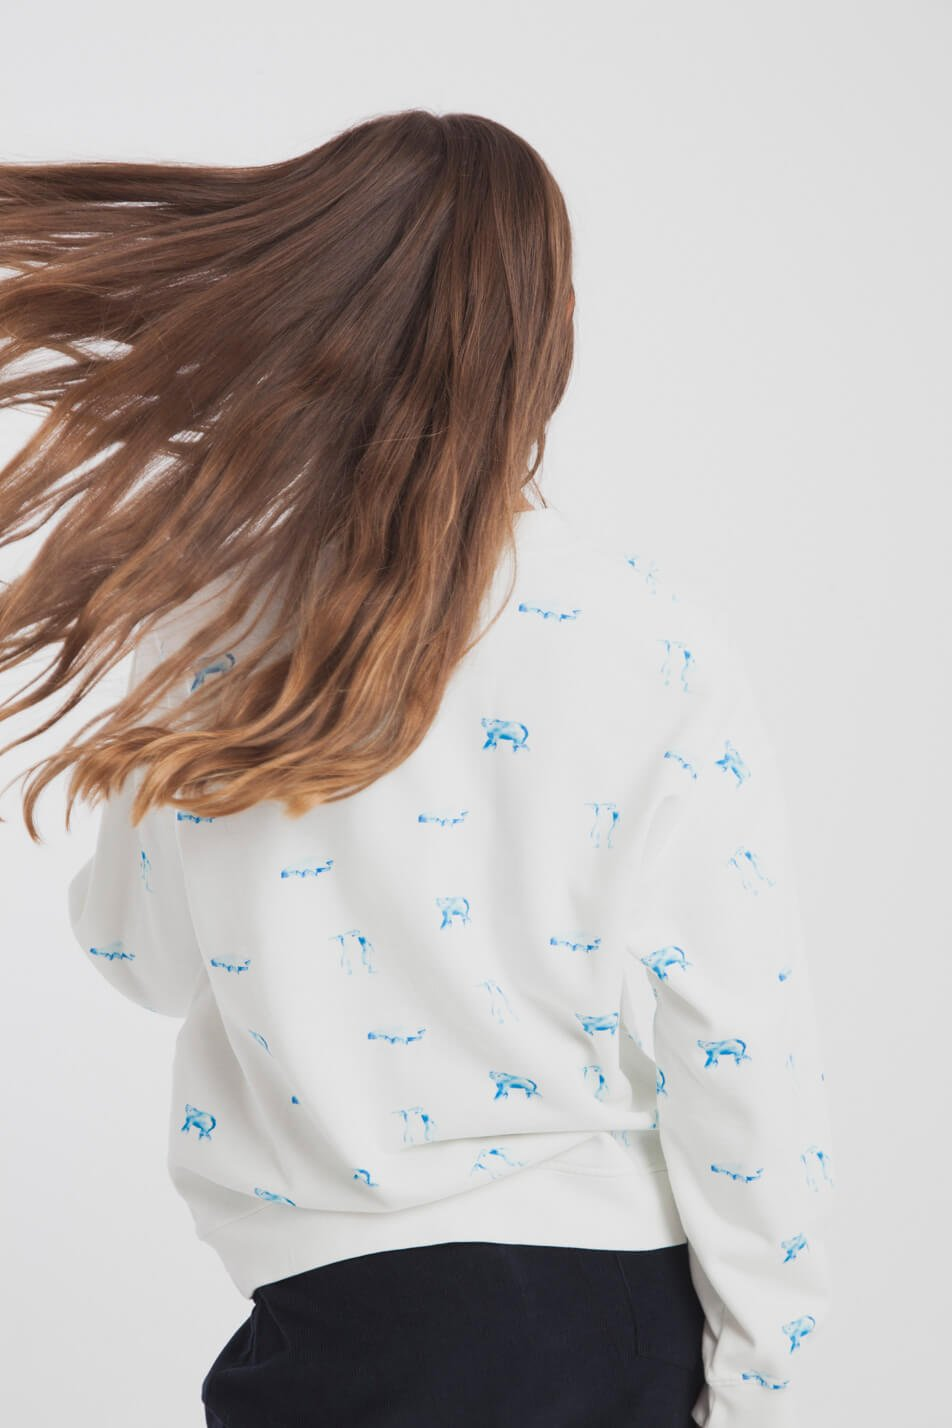 Sweater Antartic Animals Weiss from LOVECO